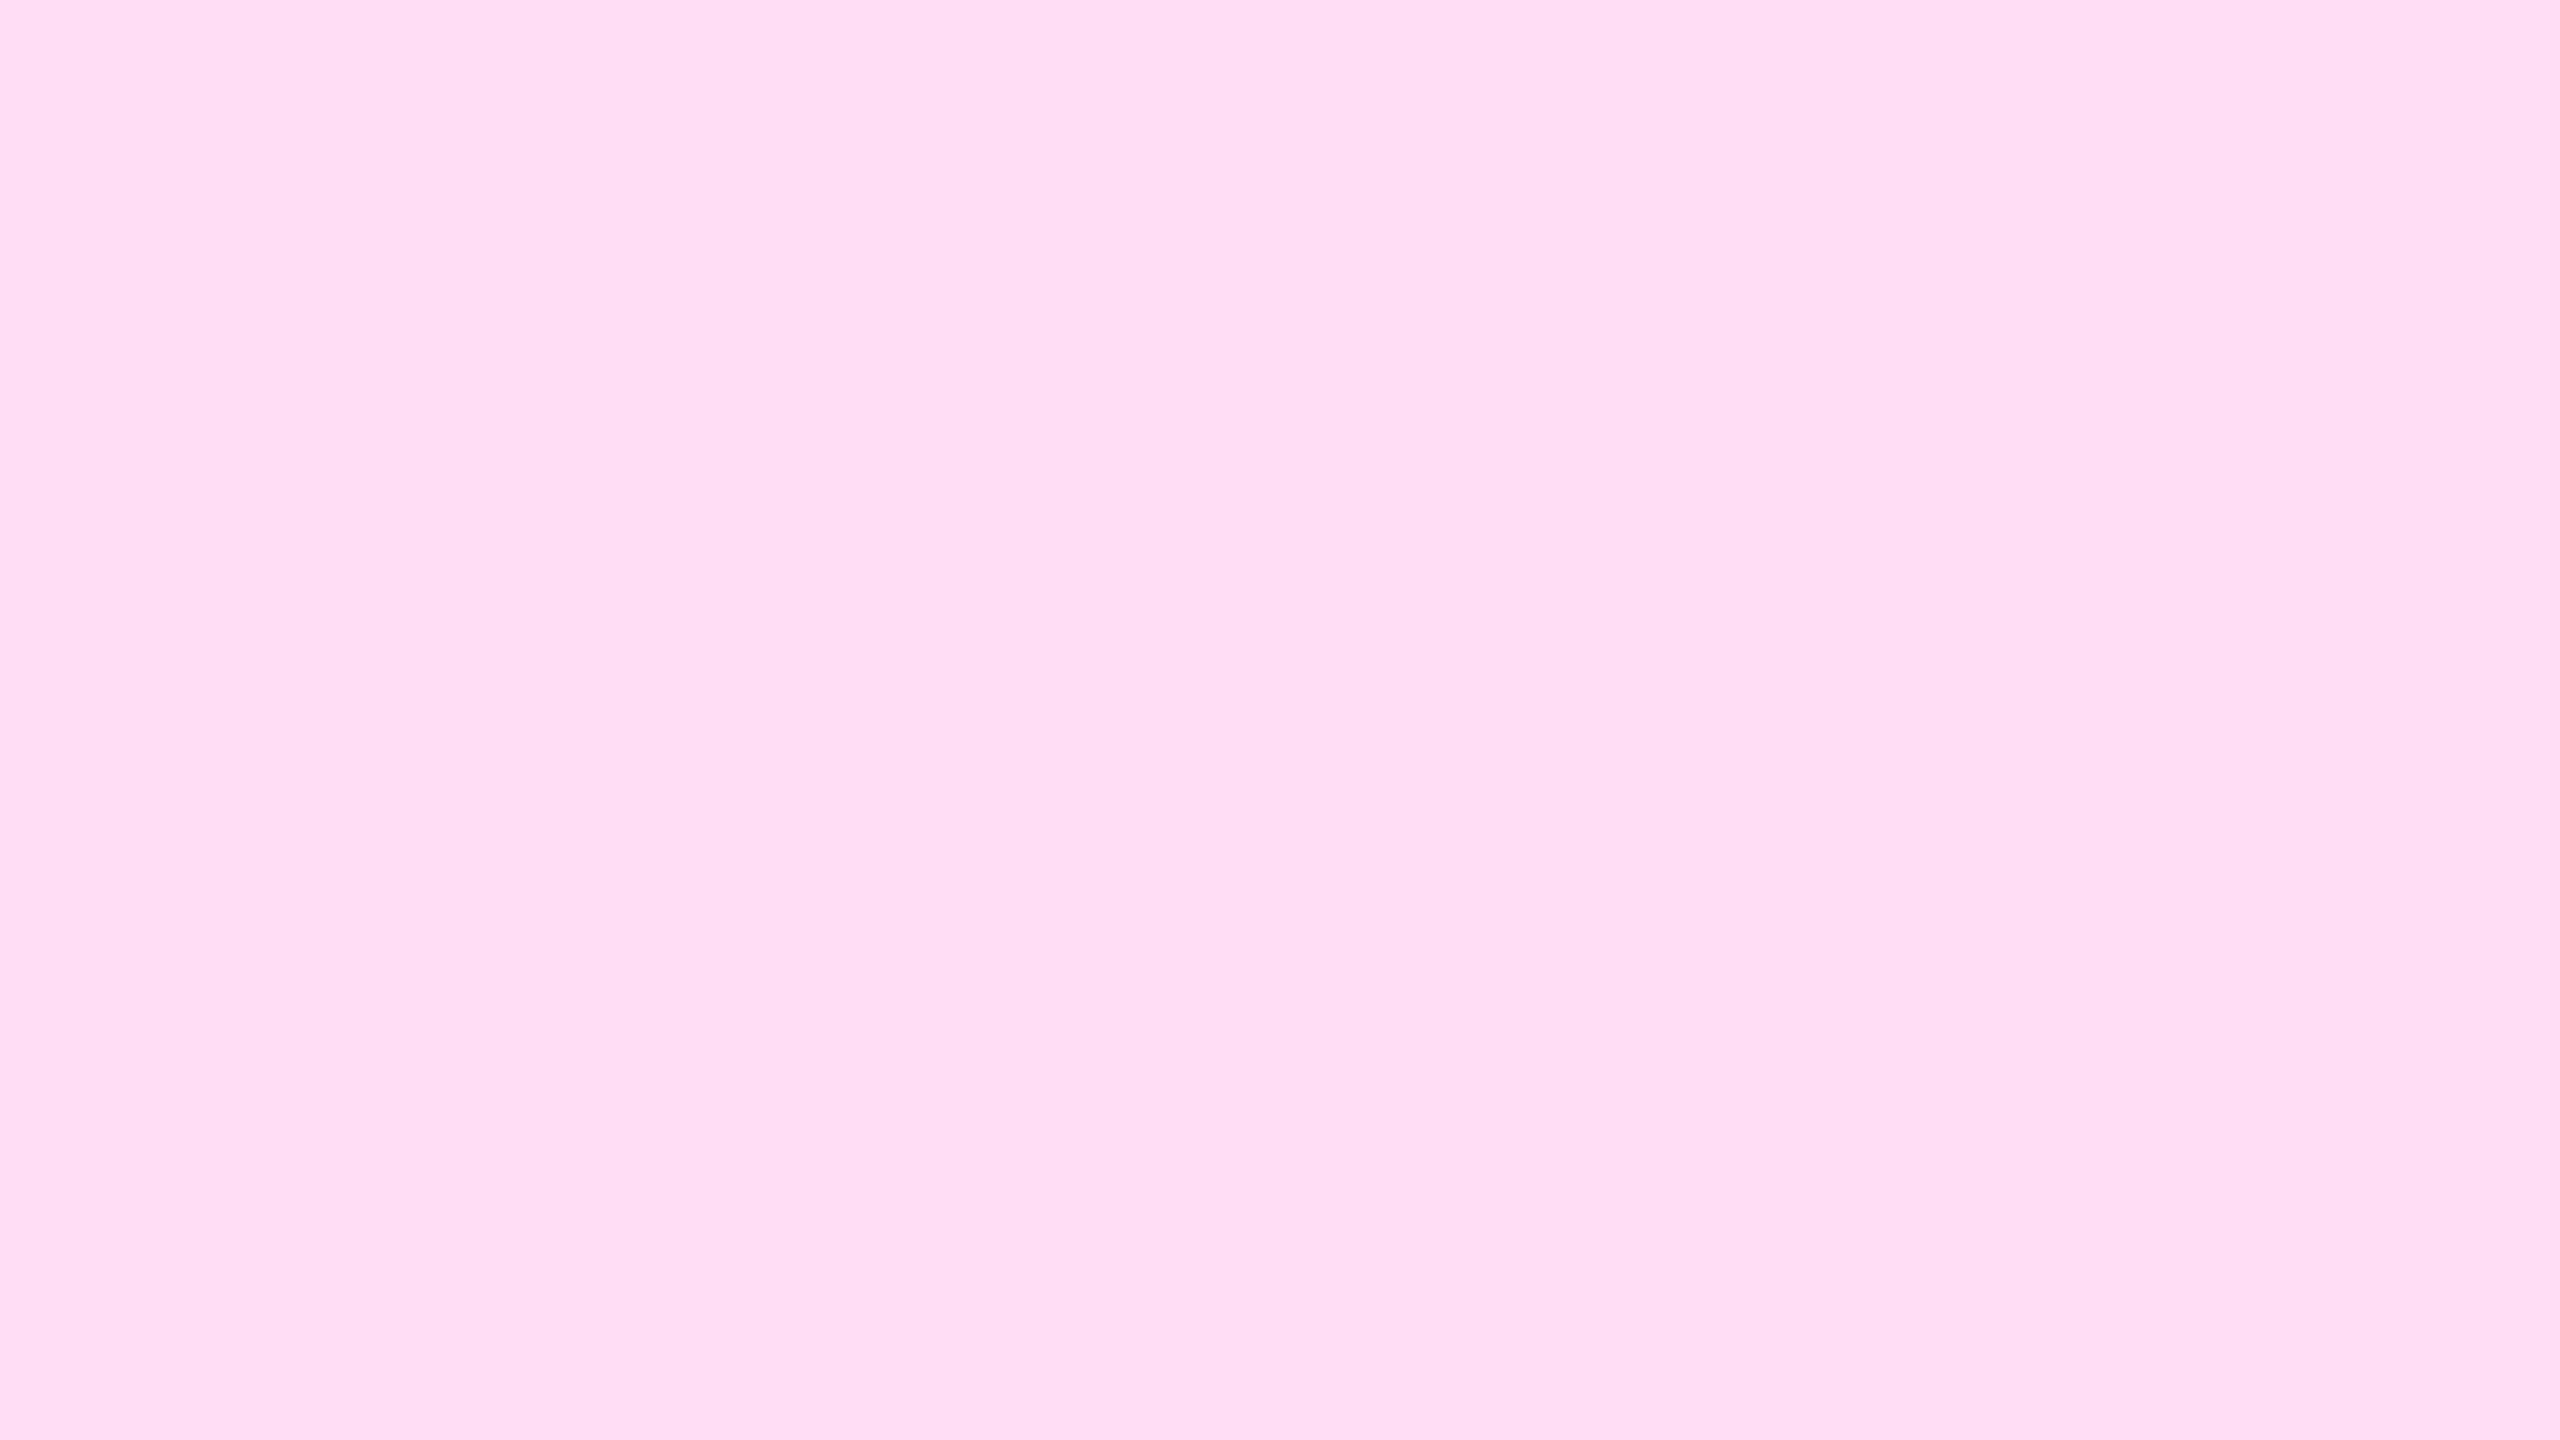 Plain Color Pink Backgrounds Posted By Samantha Sellers